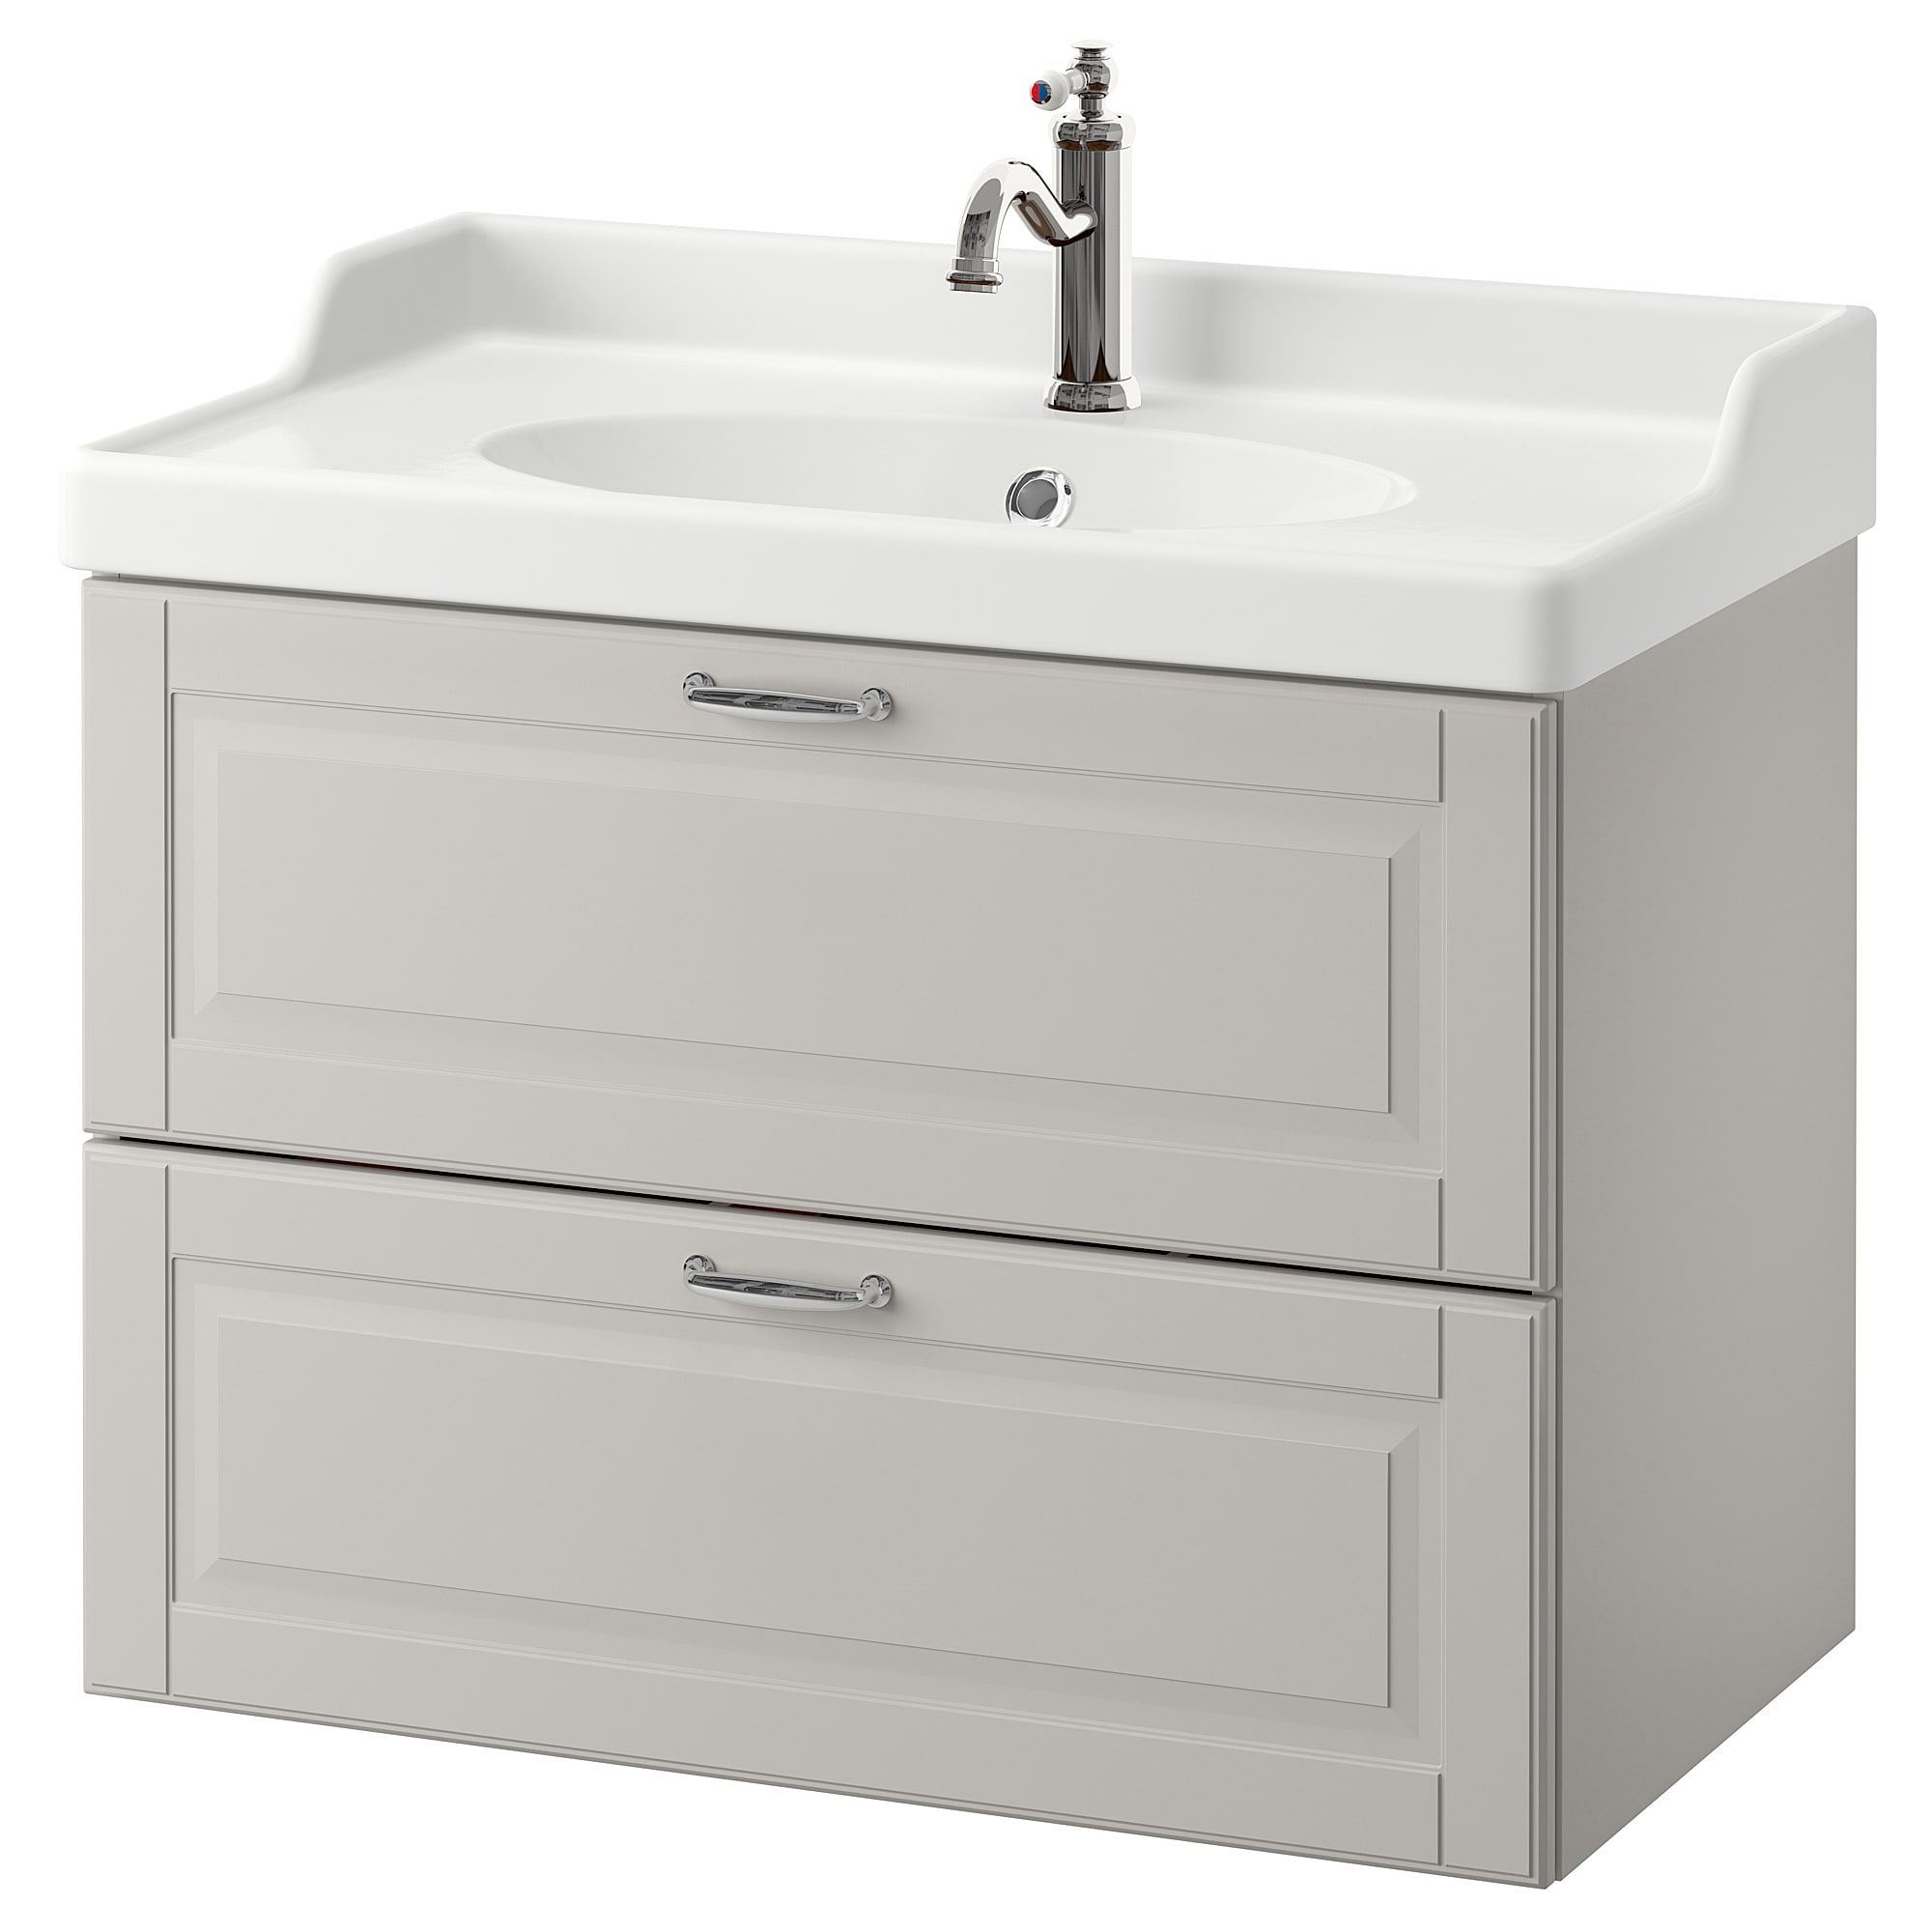 godmorgon r ttviken sink cabinet with 2 drawers kasj n light gray rh pinterest com